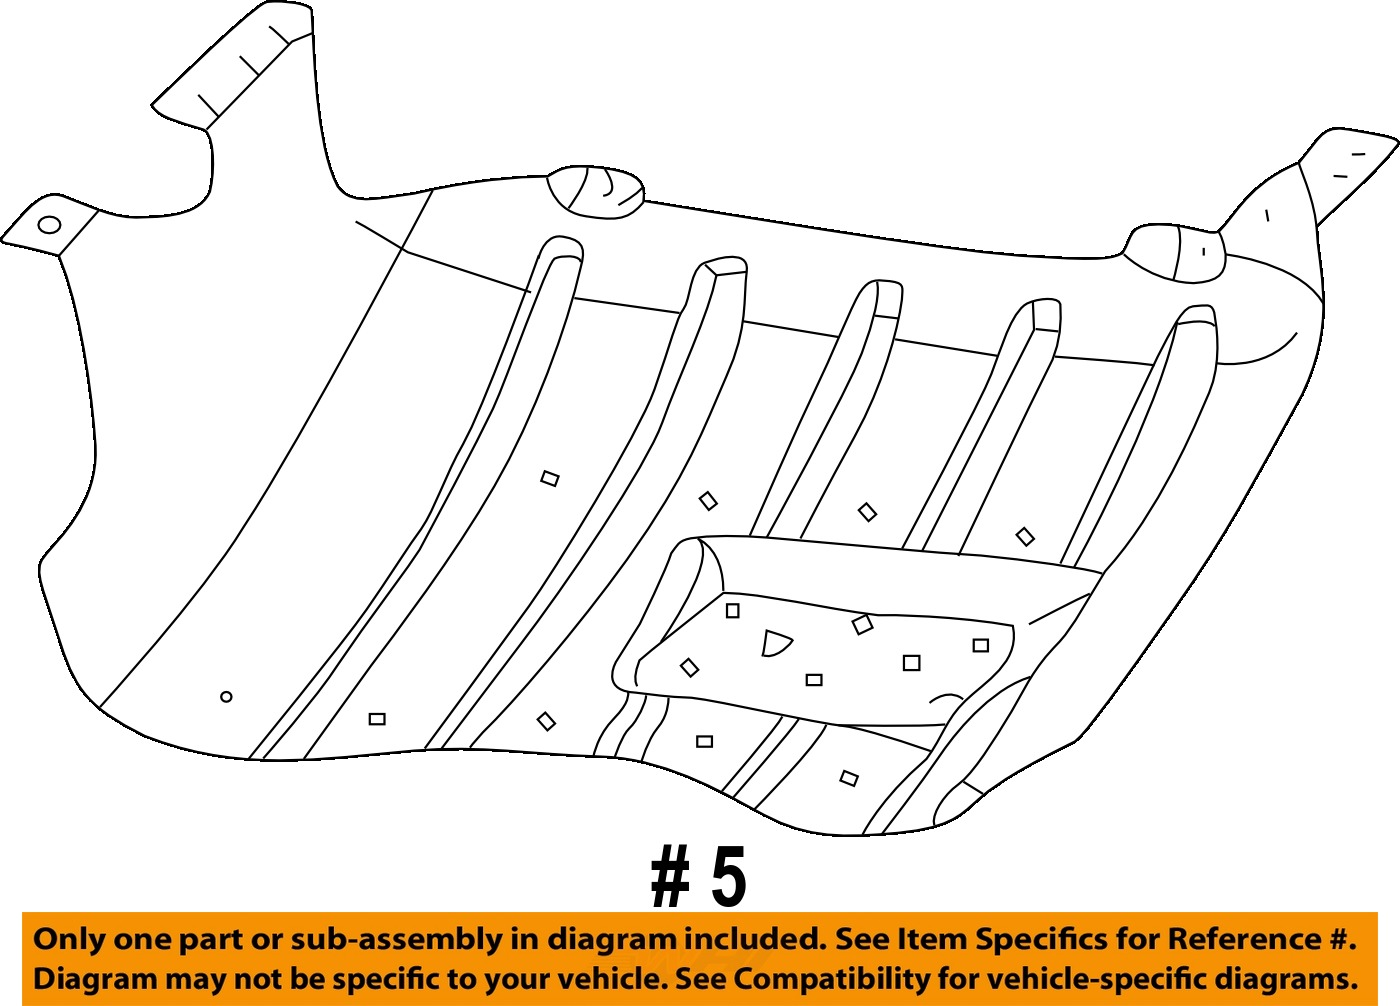 Service manual [Removing Fuel Tank From A 2004 Jeep Grand ...